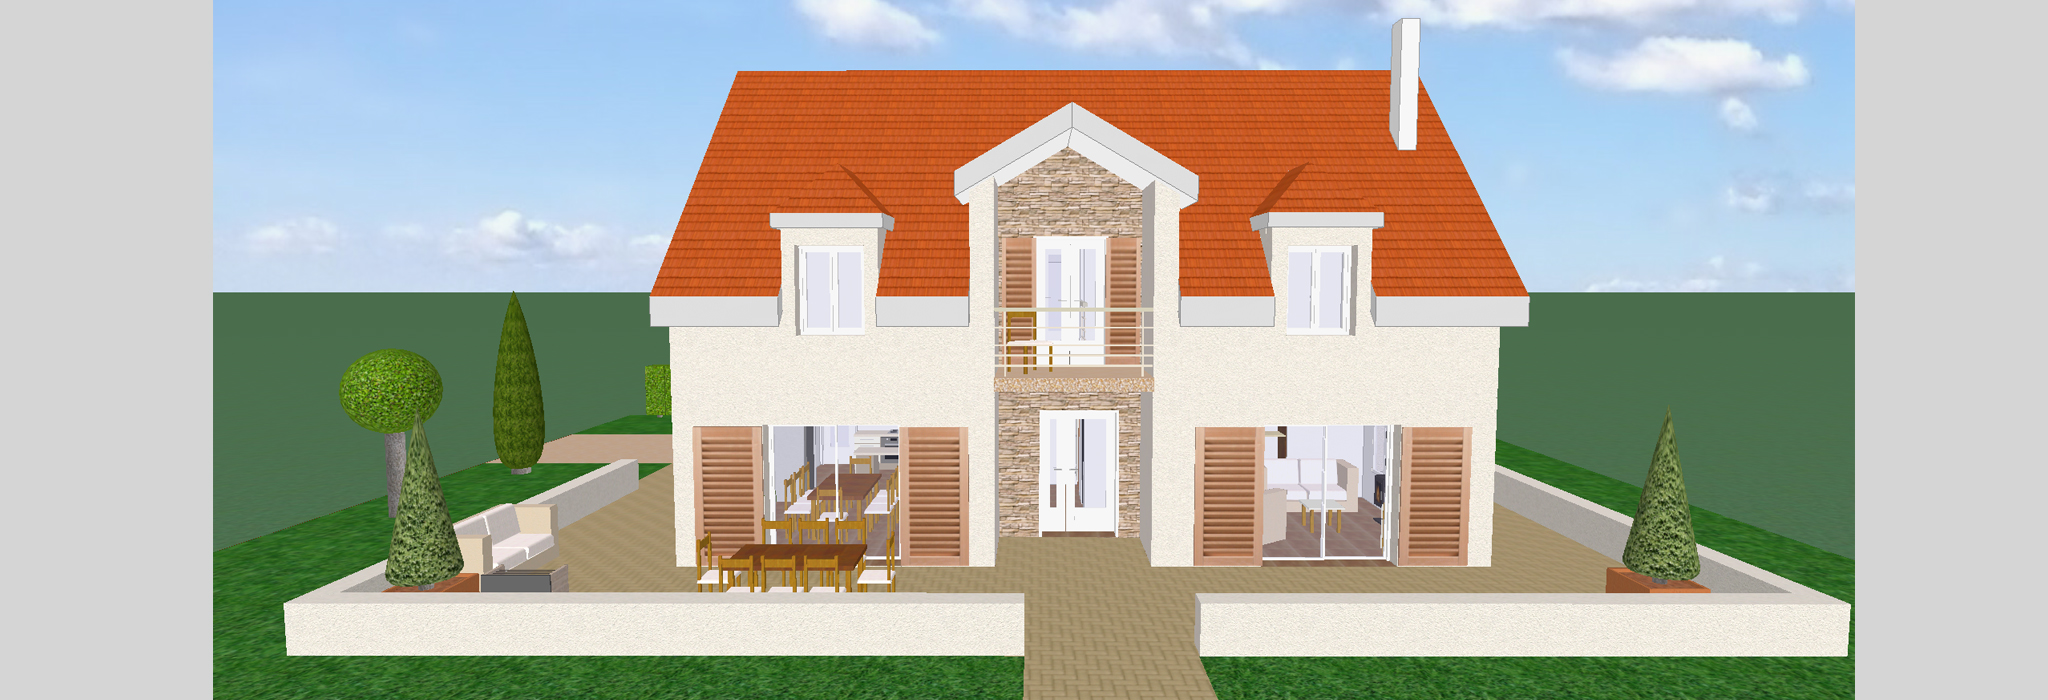 3d maison simple plan de maison en l modele quart vue d for Sites web de plan de maison